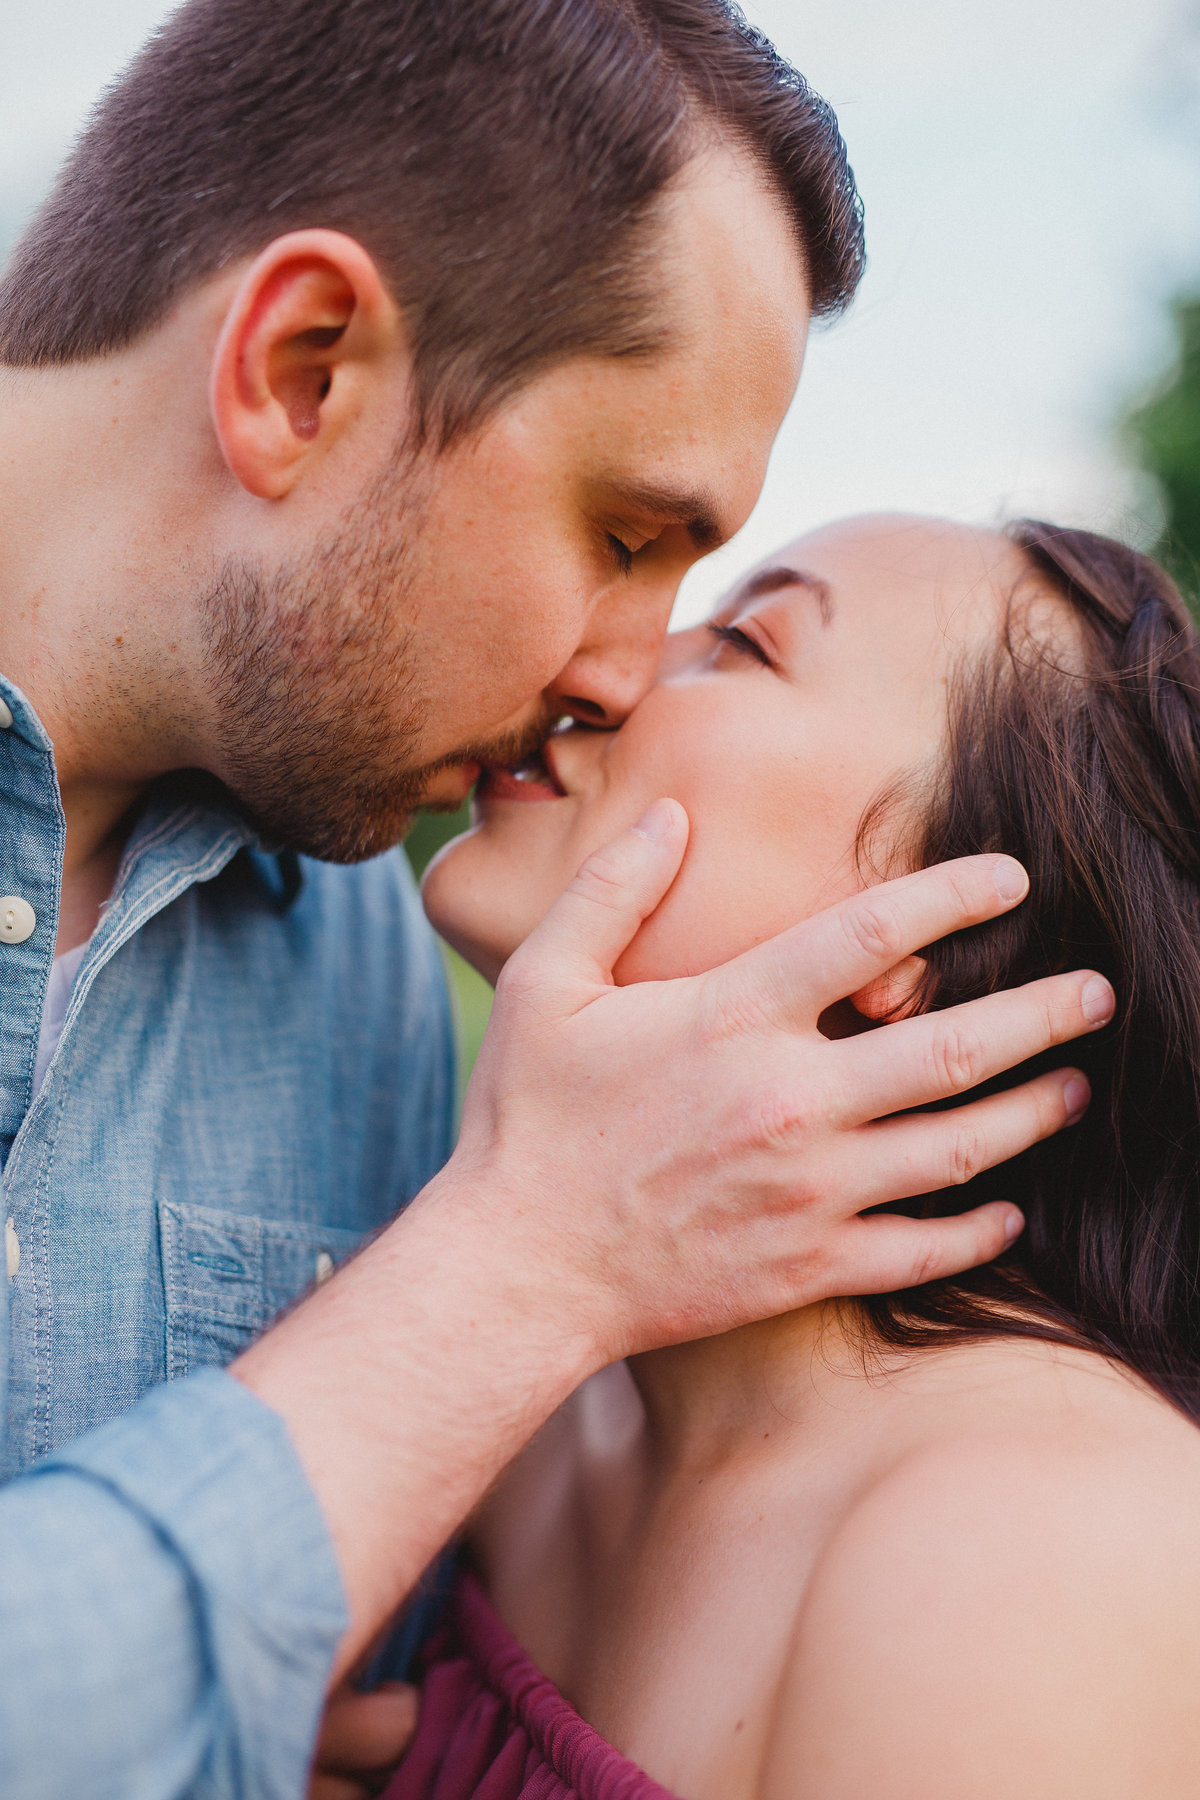 StephenAndMichelleEngaged_070617_WeeThreeSparrowsPhotography_280